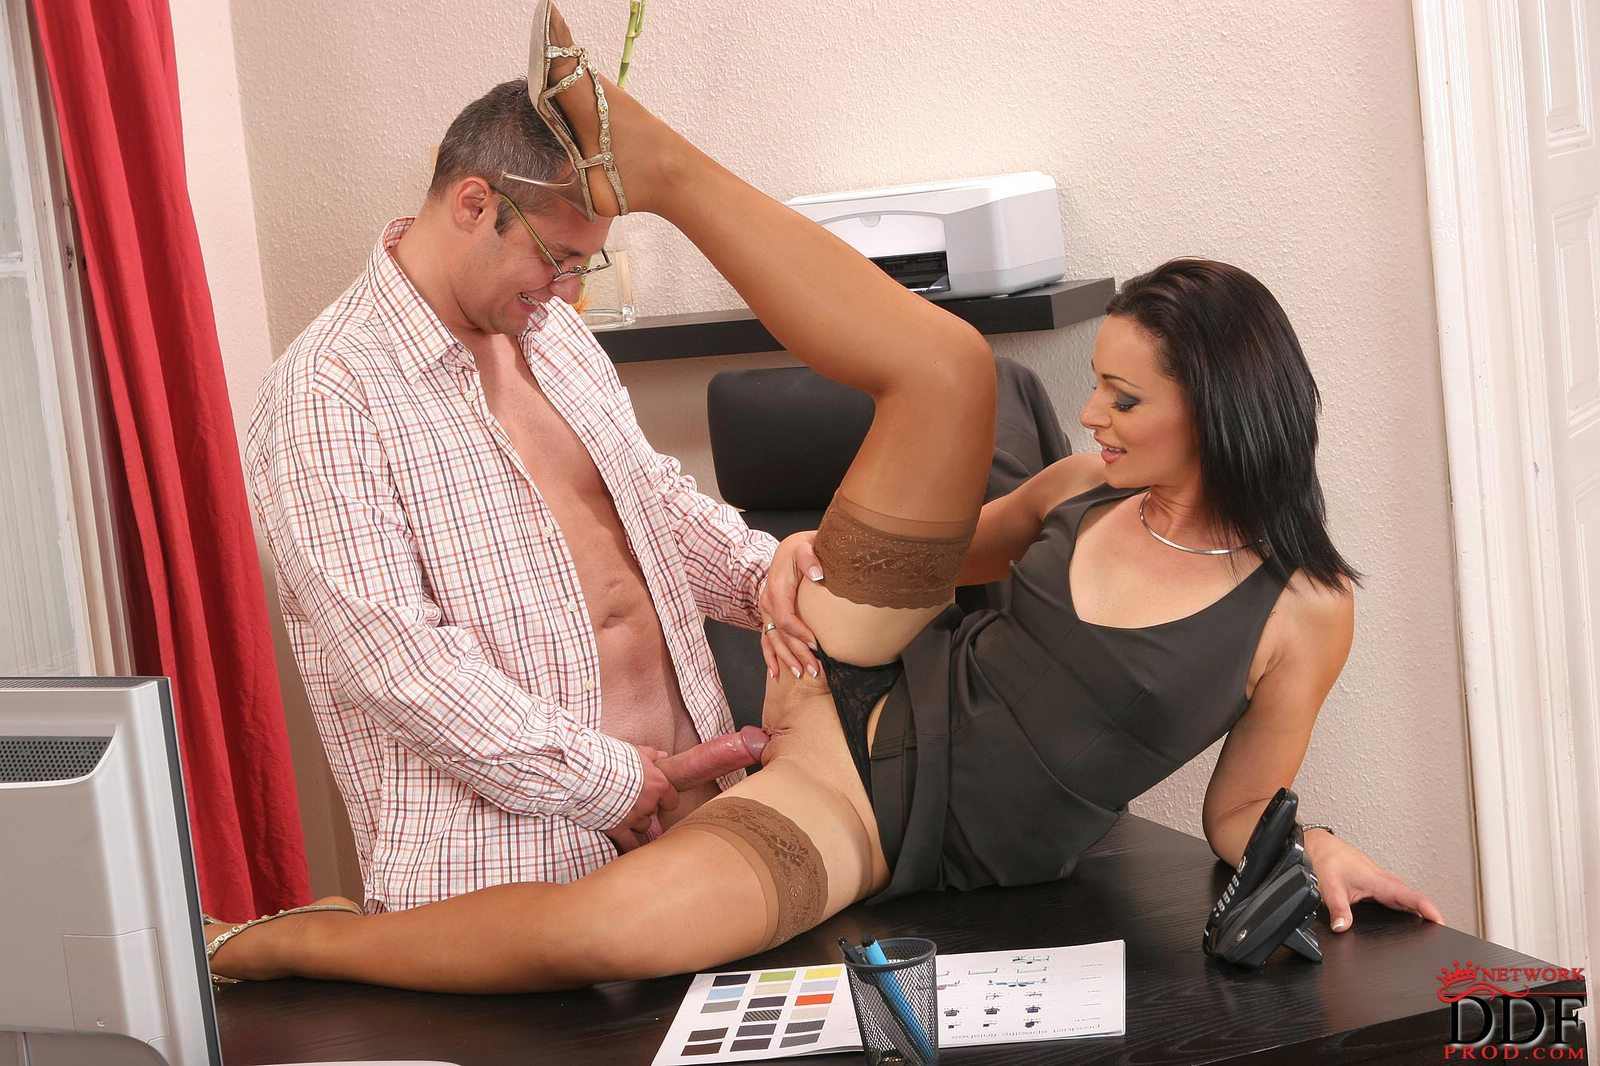 Business woman exclusive porn images